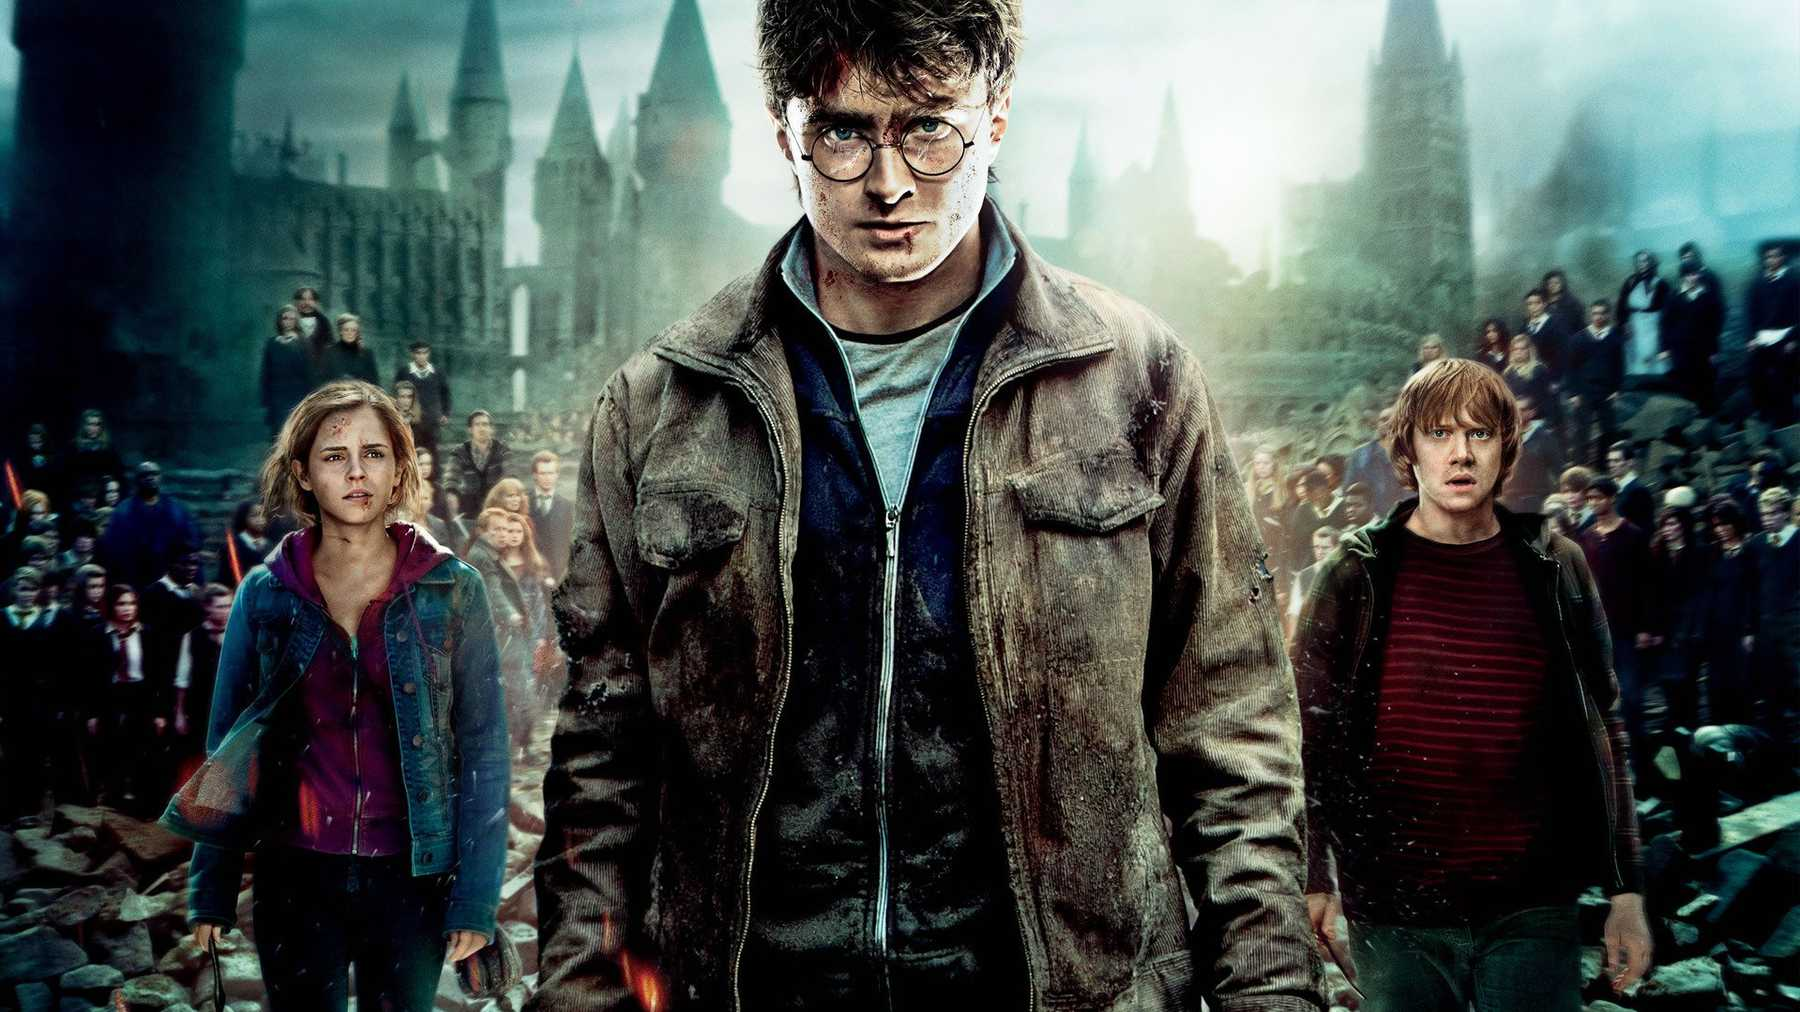 Best fantasy films of the 2010s - Deathly Hallows